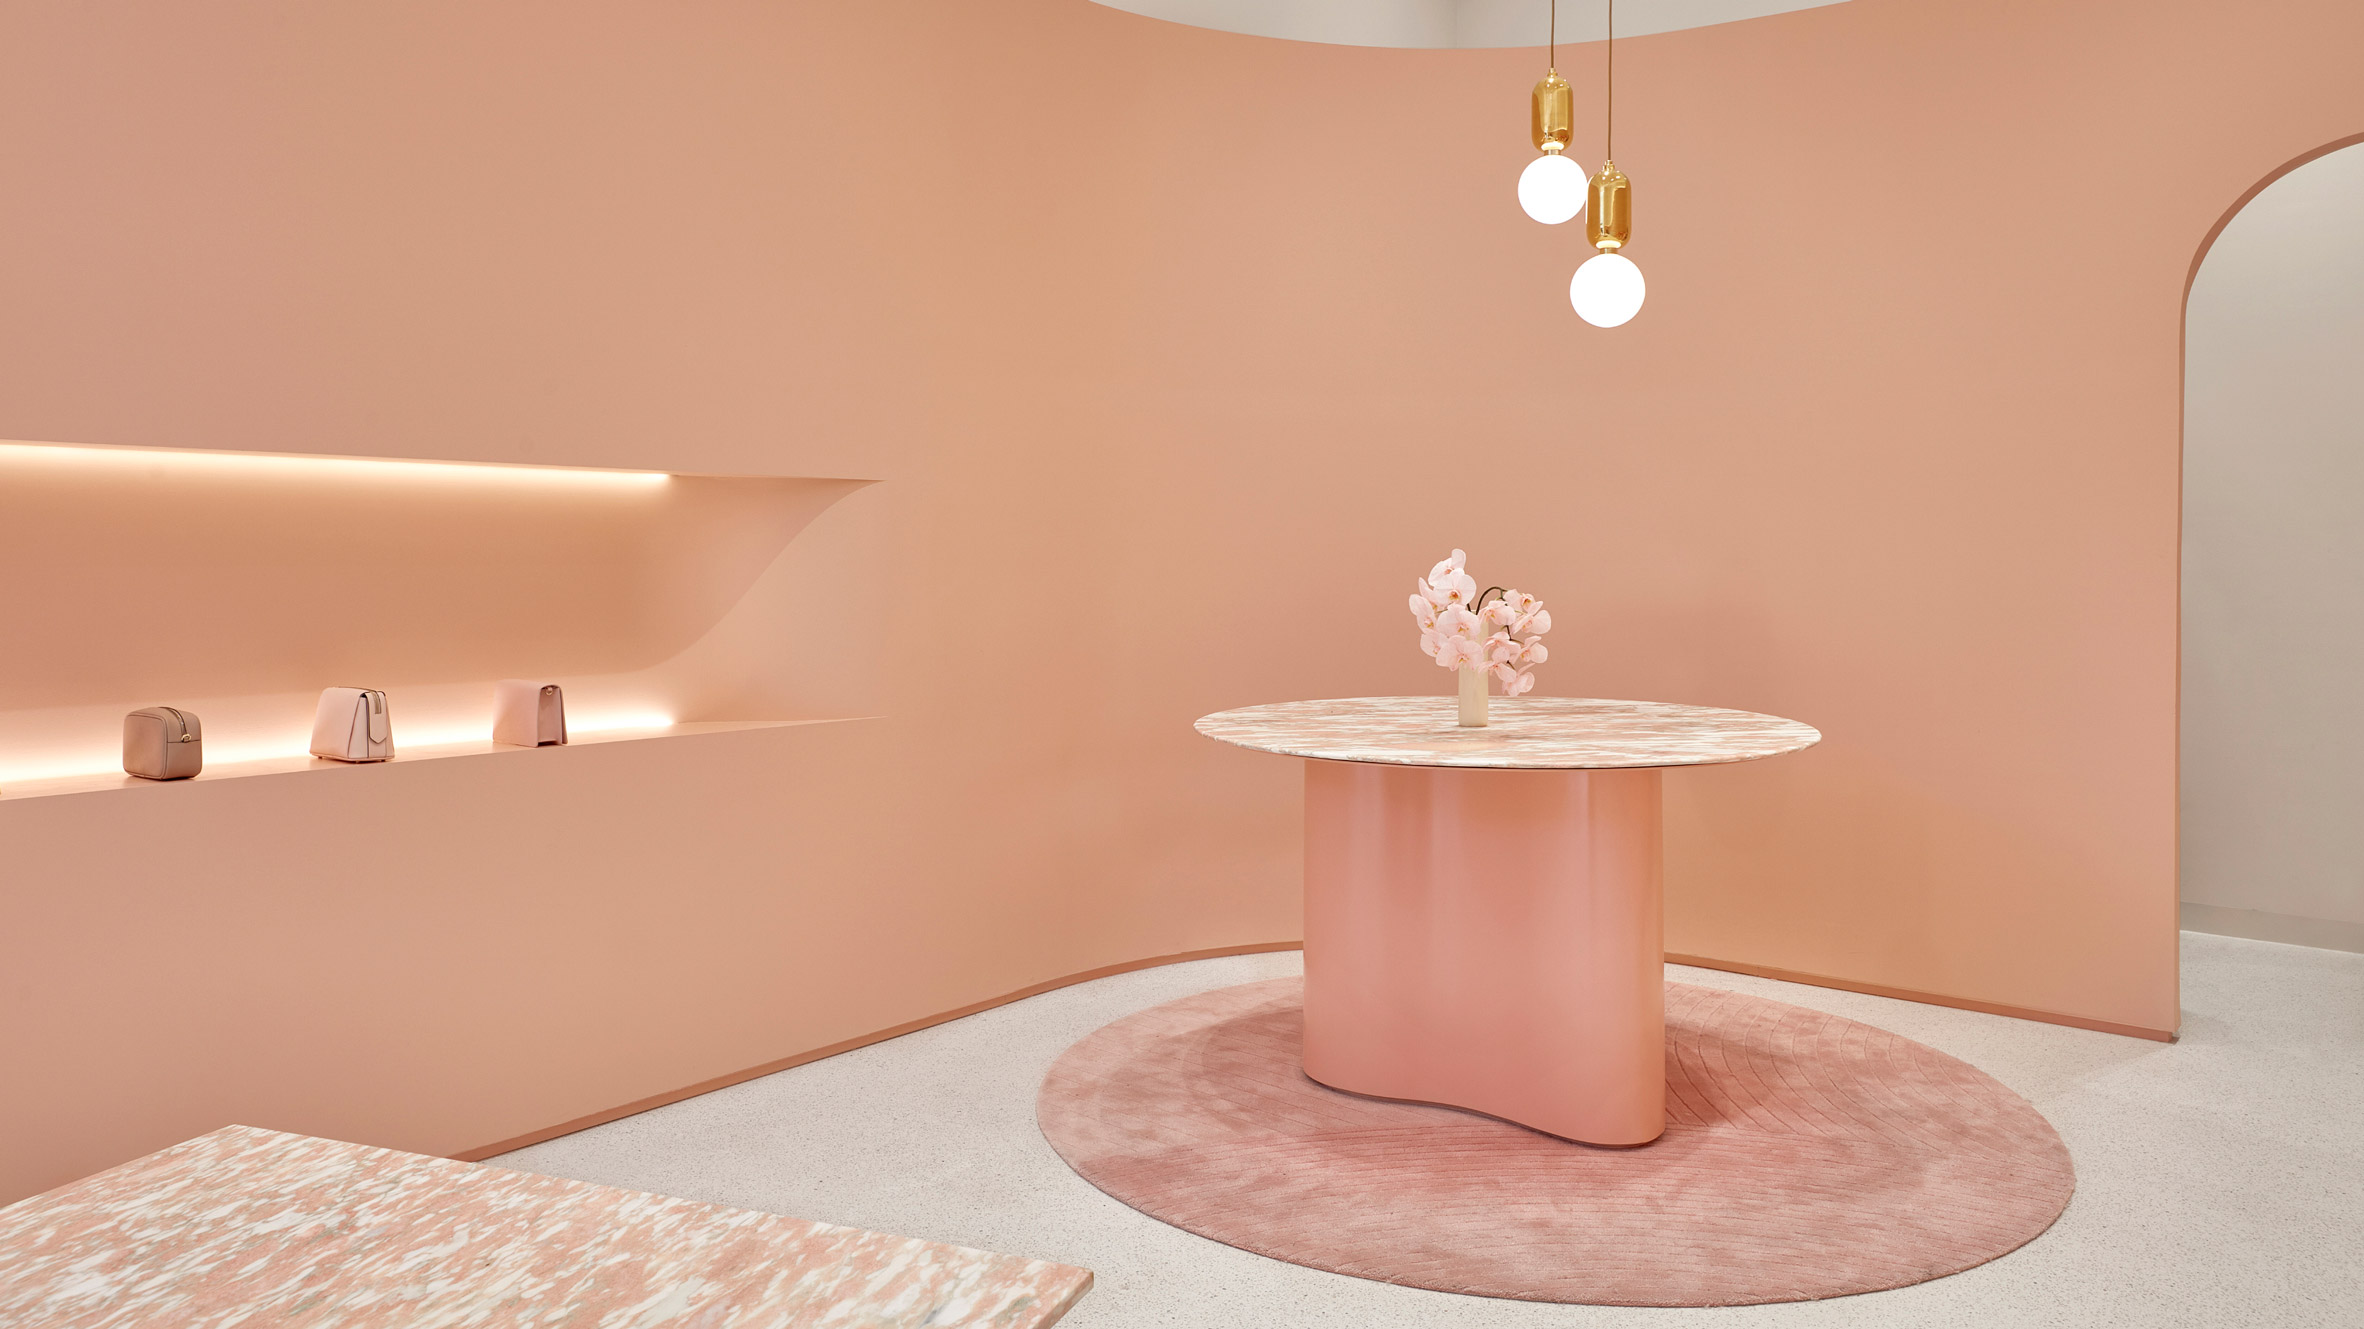 Dezeen's top shop interiors of 2018: The Daily Edited by Pattern Studio